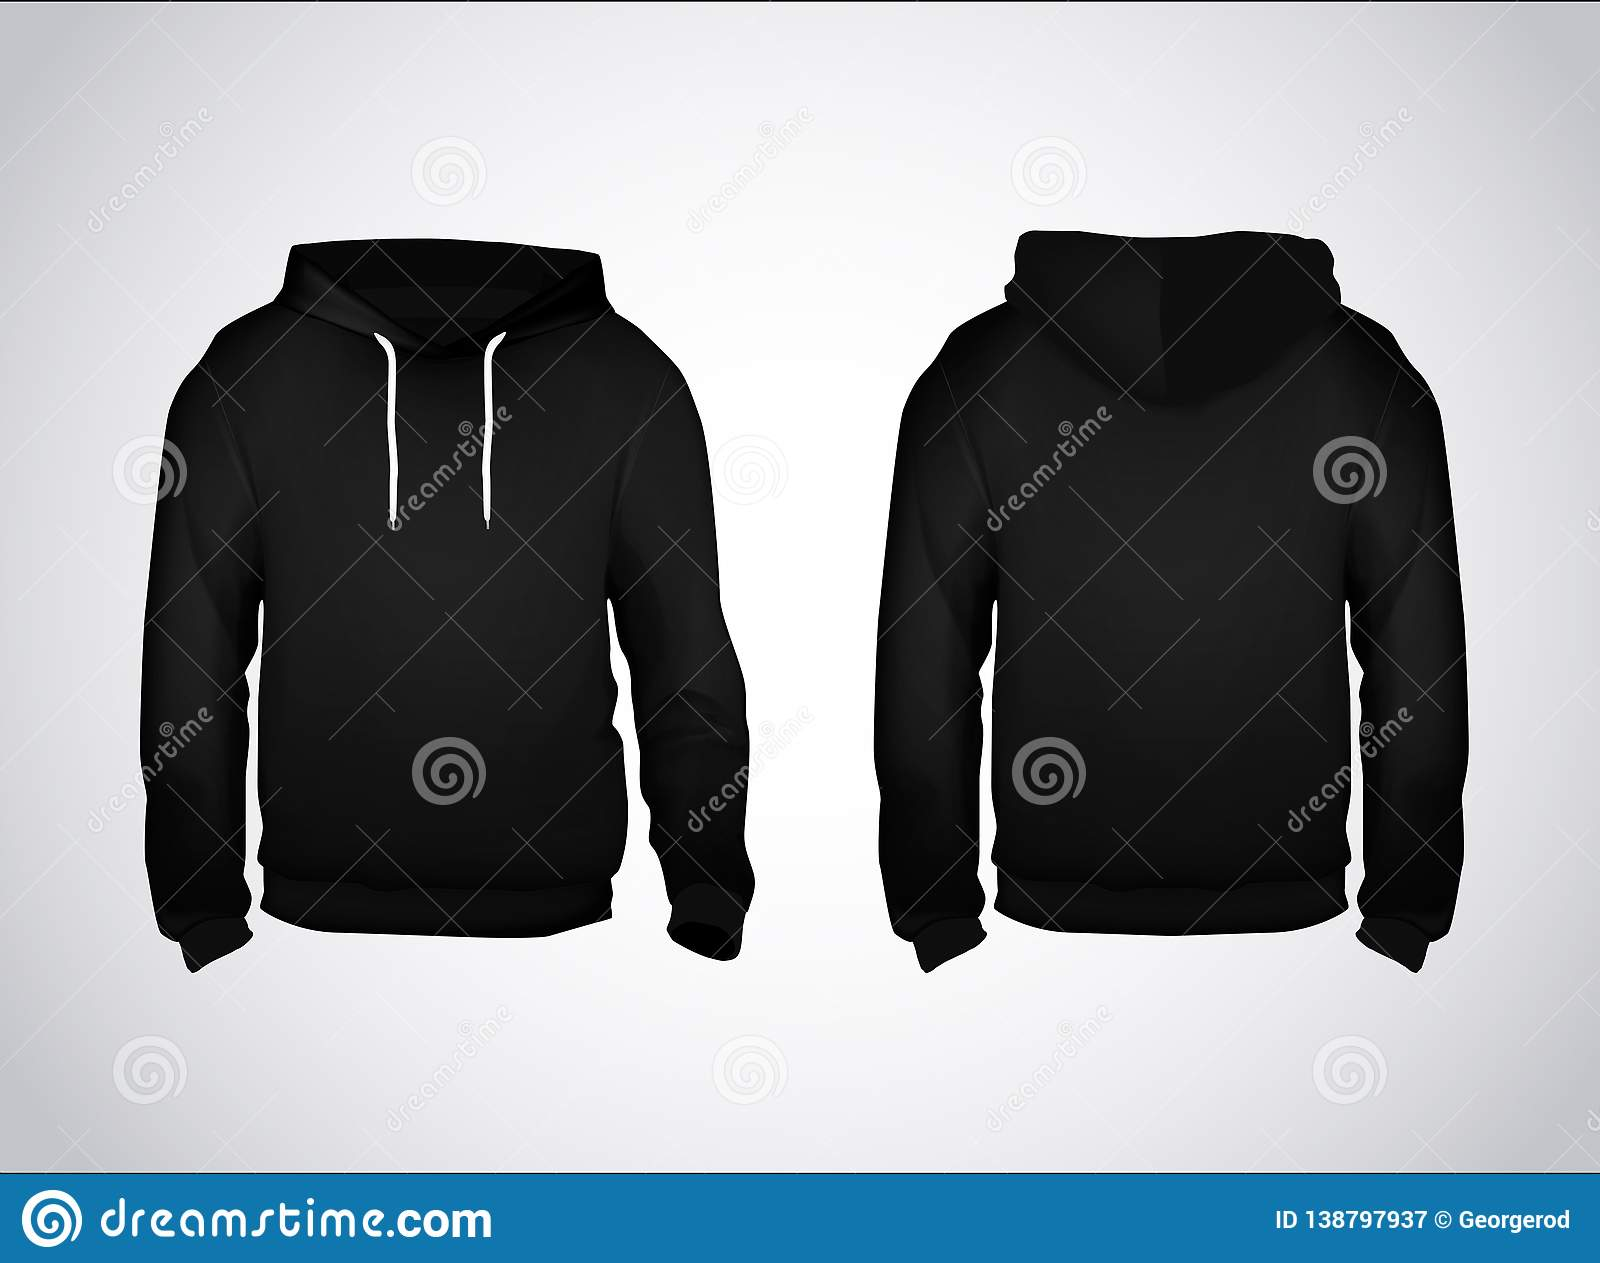 Black men`s sweatshirt template with sample text front and back view. Hoodie for branding or advertising